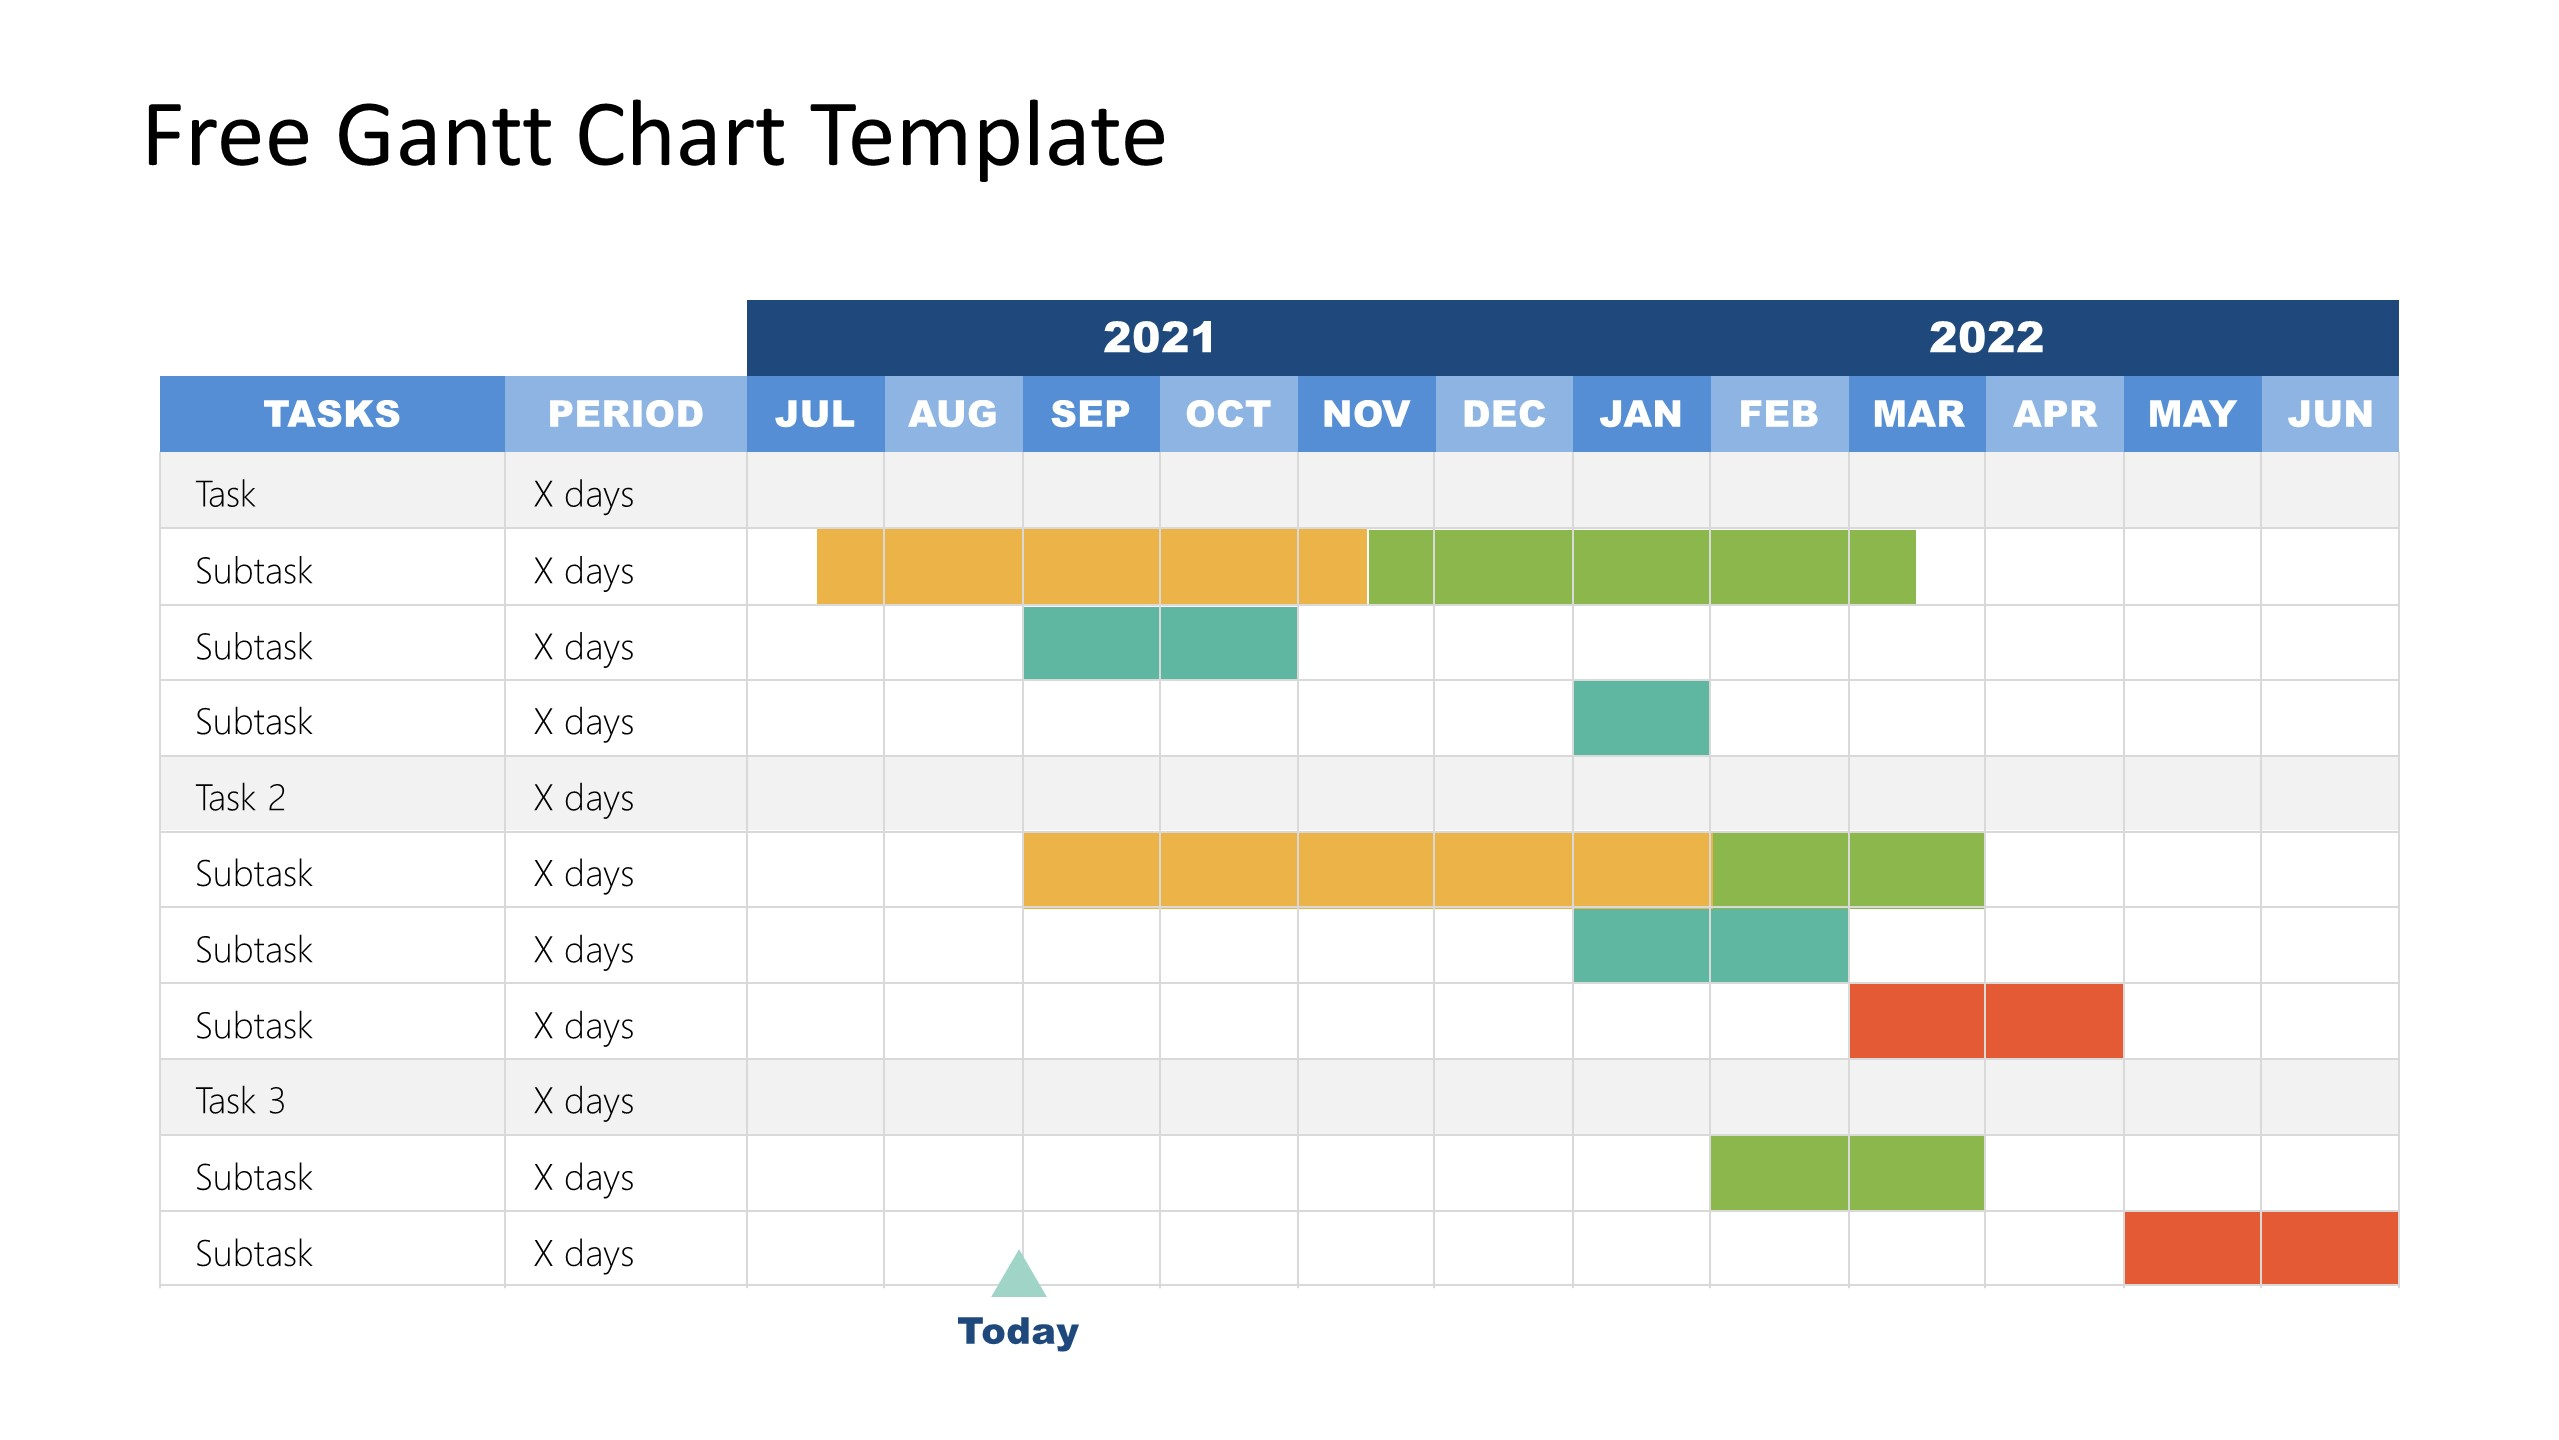 PPT Template of Gantt Chart for Year